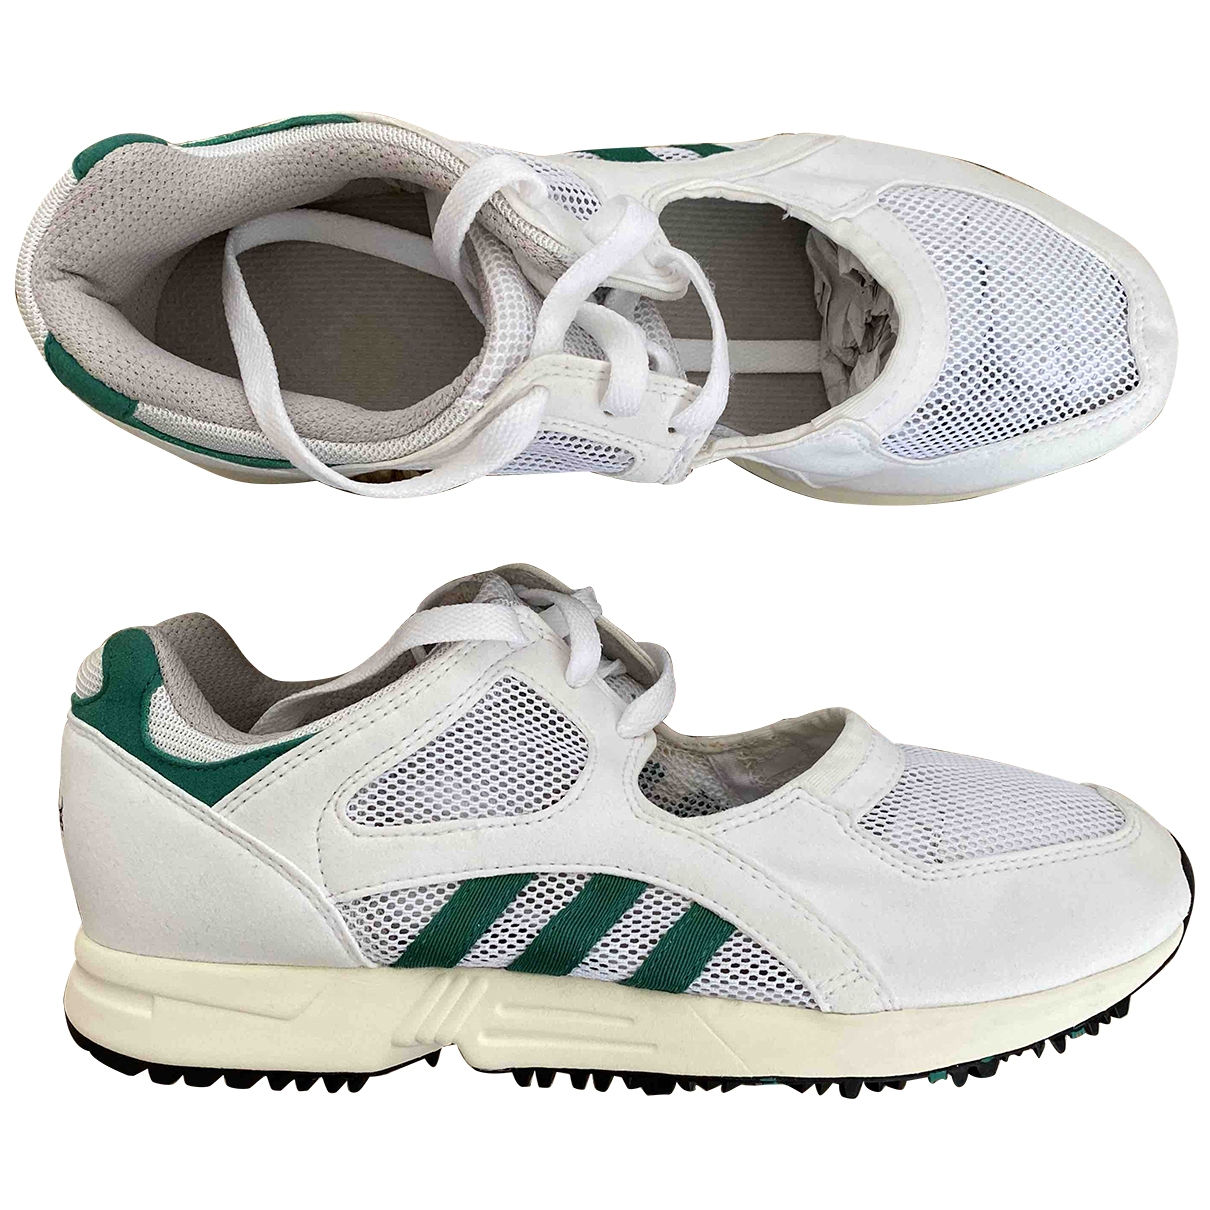 Adidas EQT Support White Leather Trainers for Women 7 UK